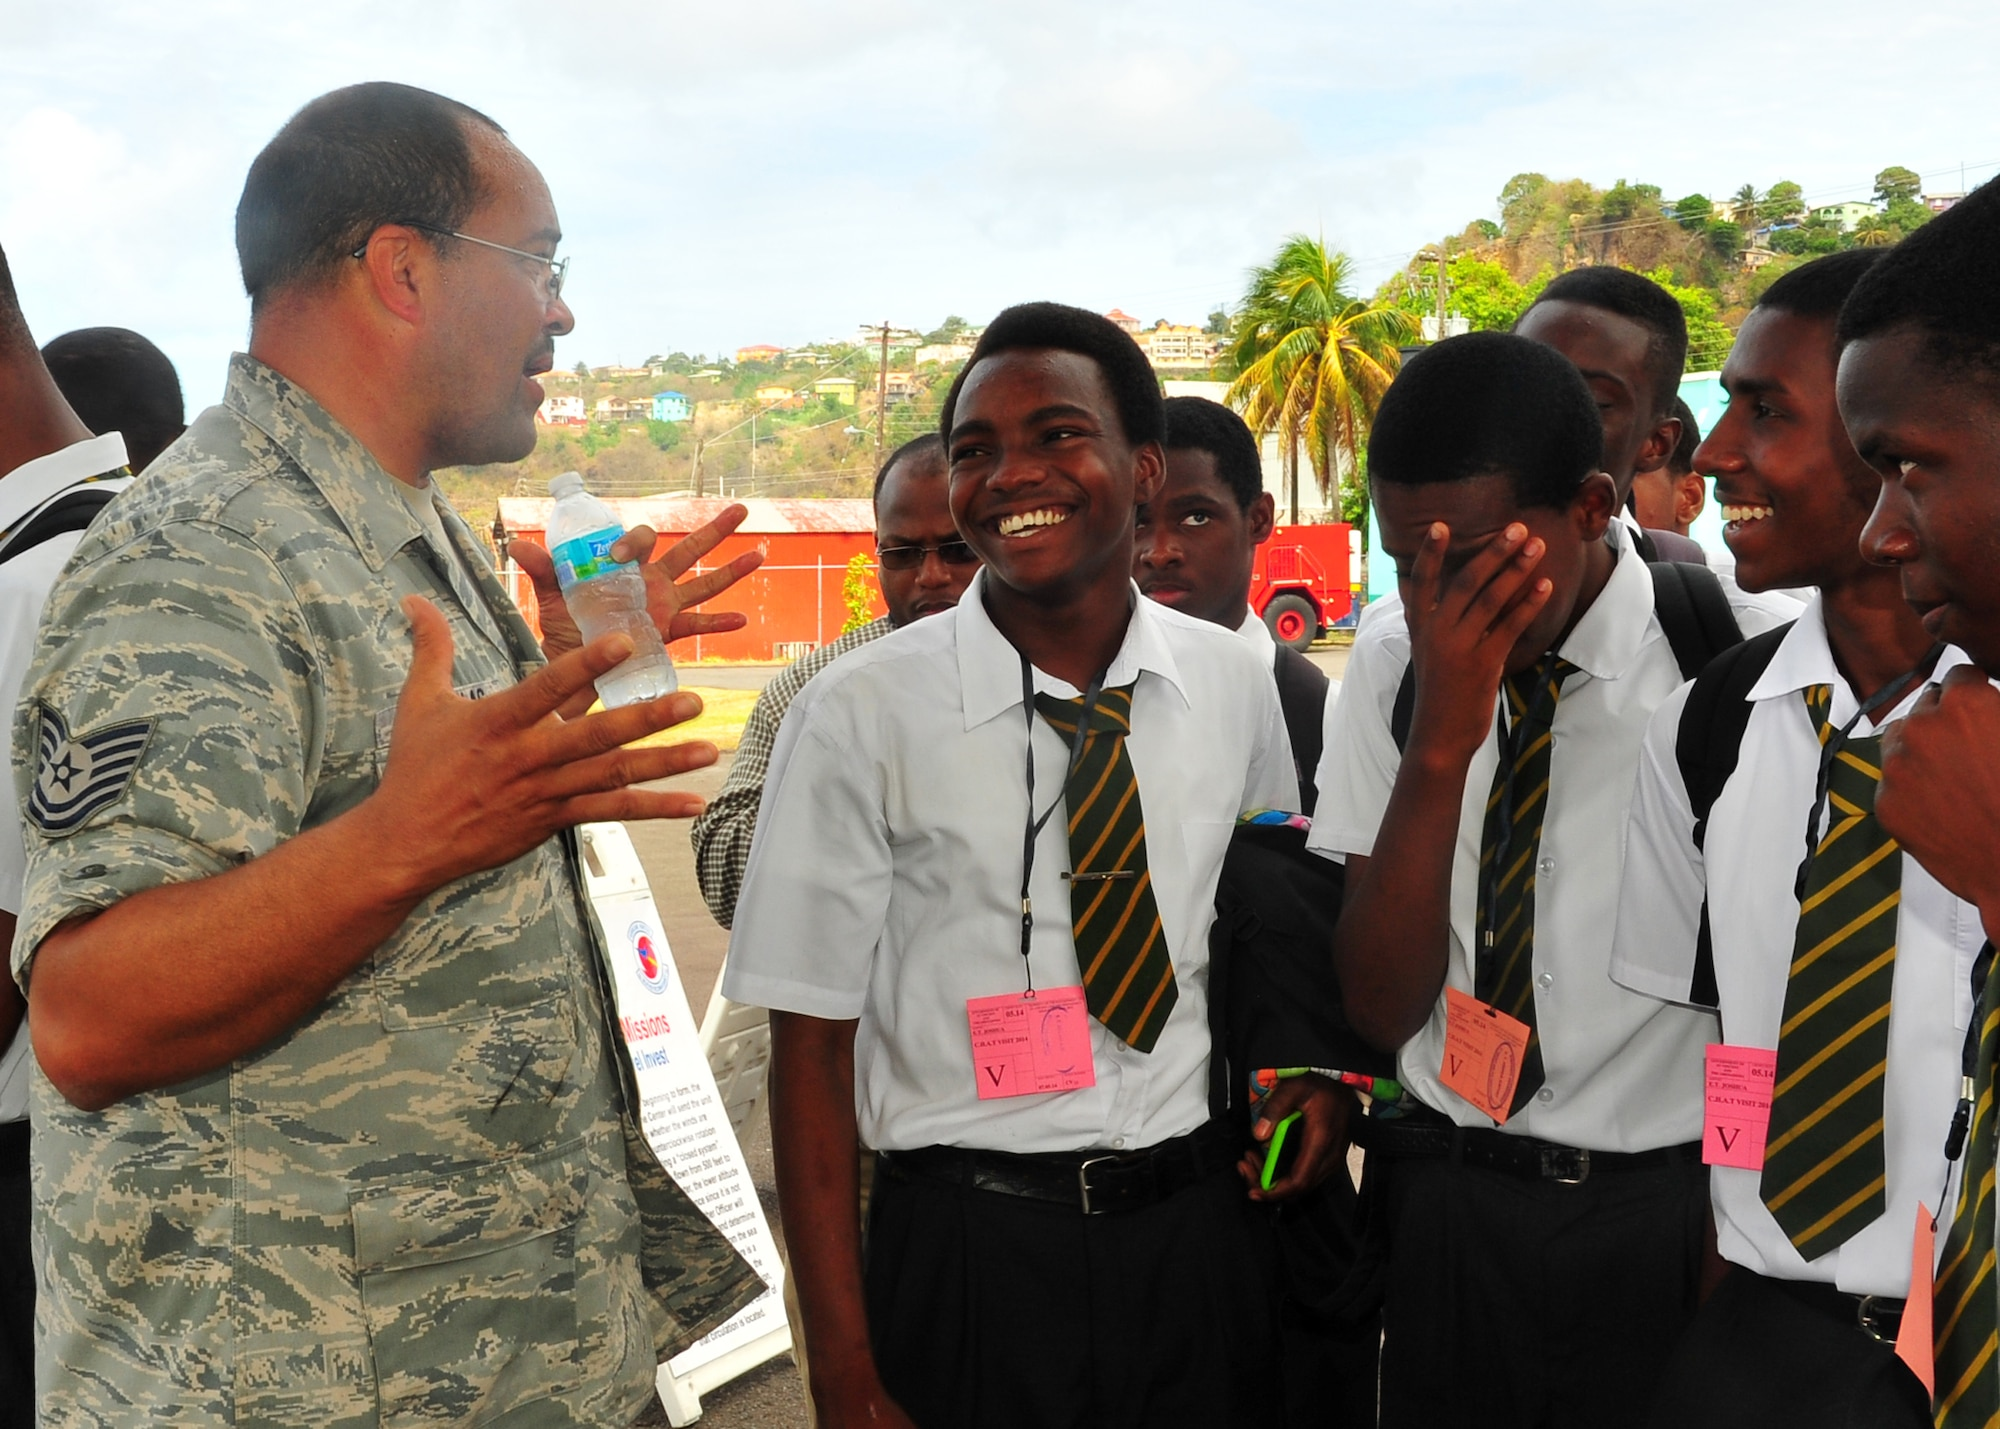 Tech. Sgt. Clinton Nicholas answers student's questions during a tour of the WC-130J Hercules May 9, 2014, at the E.T. Joshua Airport, St. Vincent. Nicholas was part of the Caribbean hurricane awareness tour, or CHAT, May 4-11. CHAT is a joint effort between the National Oceanic and Atmospheric Administration's national hurricane center and the 403rd Wing's 53rd Weather Reconnaissance Squadron. The tour promotes hurricane awareness and preparedness throughout the Caribbean region. Nicholas is a 403rd Aircraft Maintenance Squadron dedicated crew chief. (U.S. Air Force photo/Maj. Marnee A.C.Losurdo)